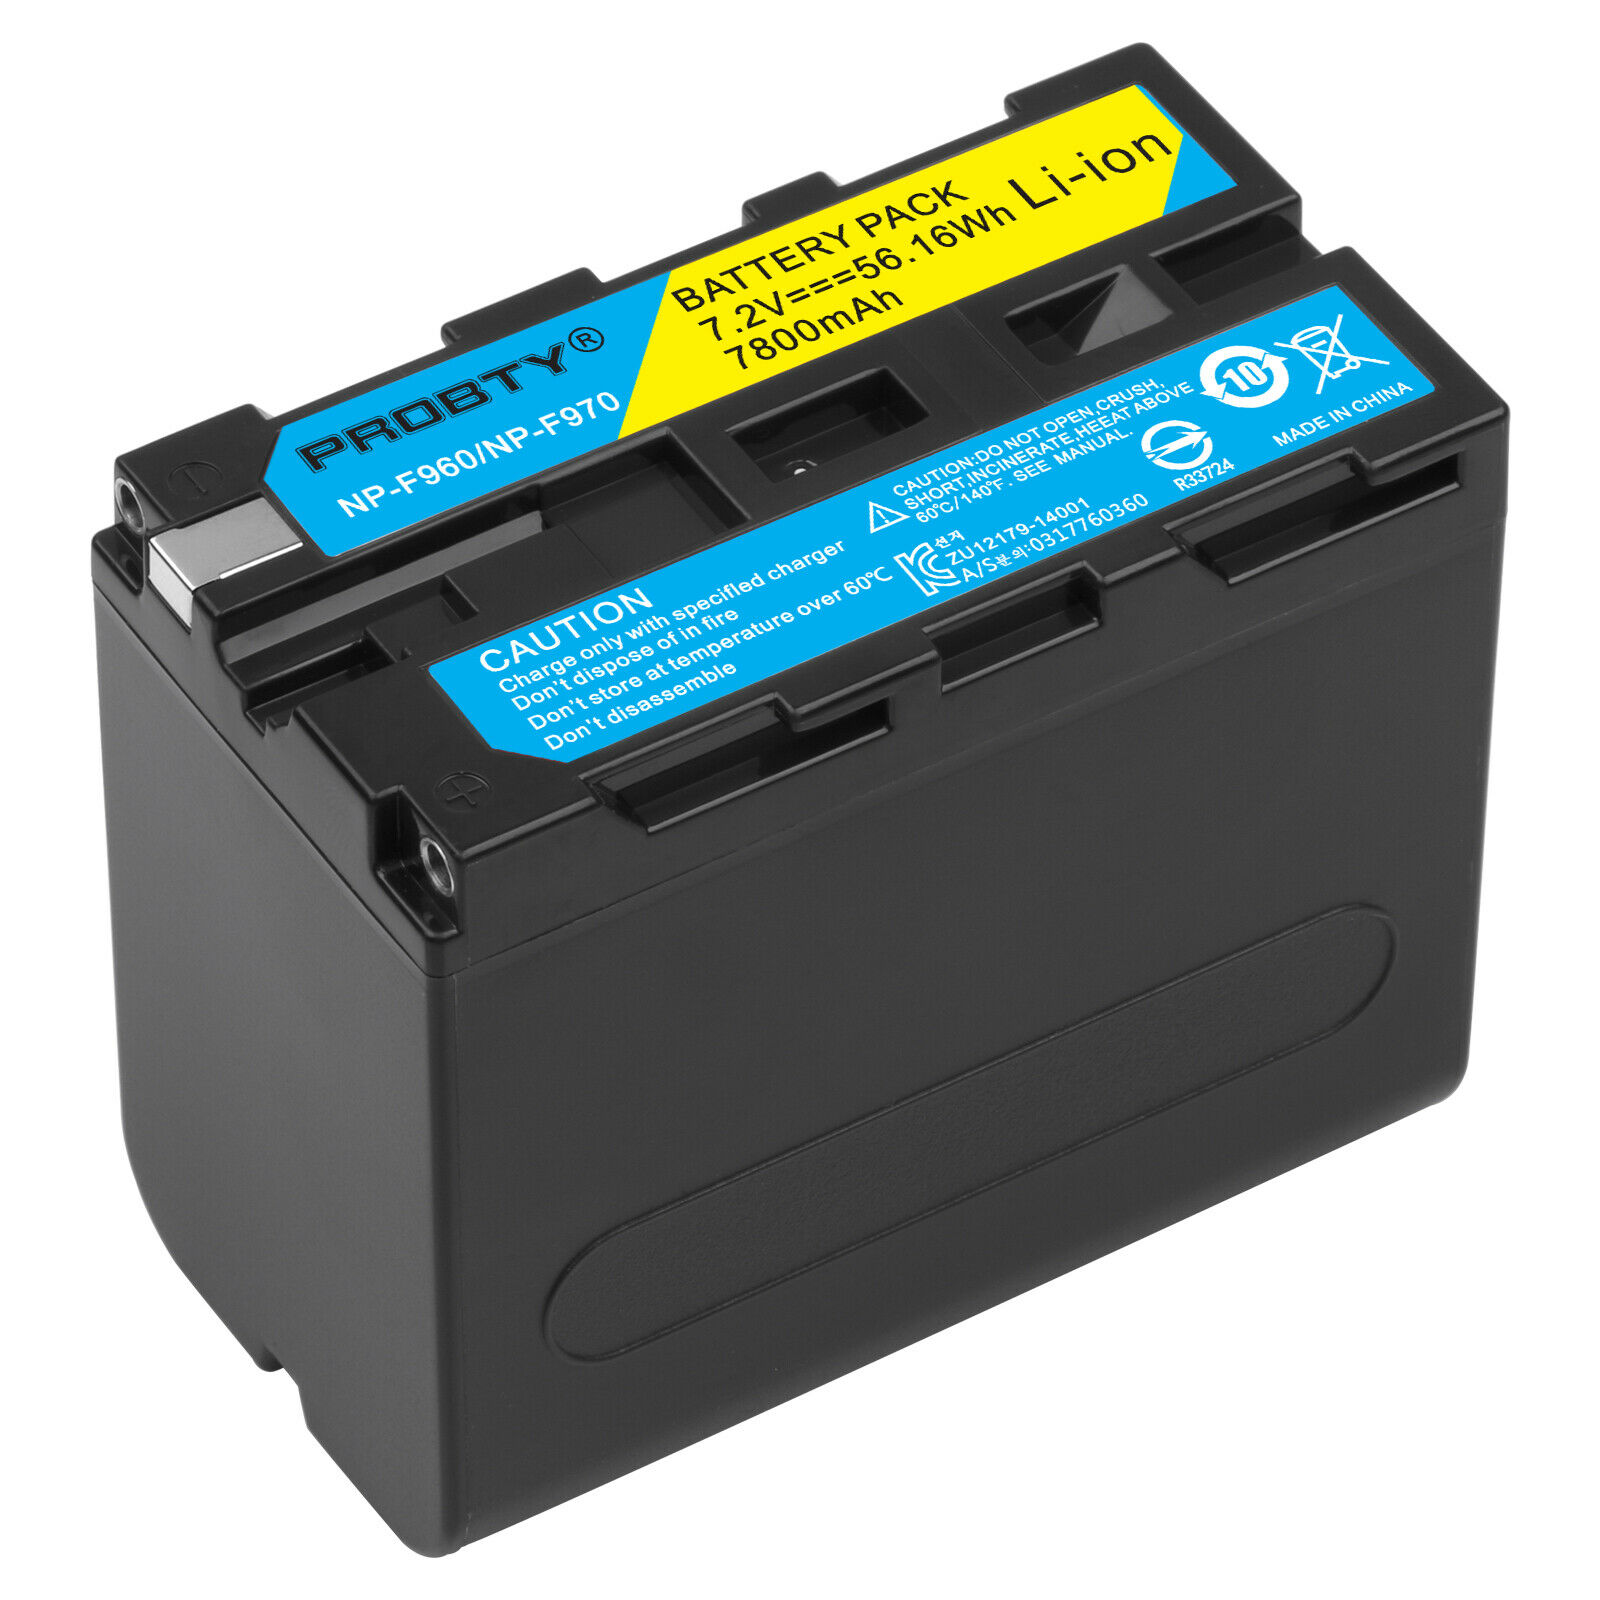 2pcs  7800mAh NP F960 NP F970 batteries / NP F960 battery For Sony NP F550 F550 NP F770 NP F750 F960 F970 free shipping-in Digital Batteries from Consumer Electronics    3